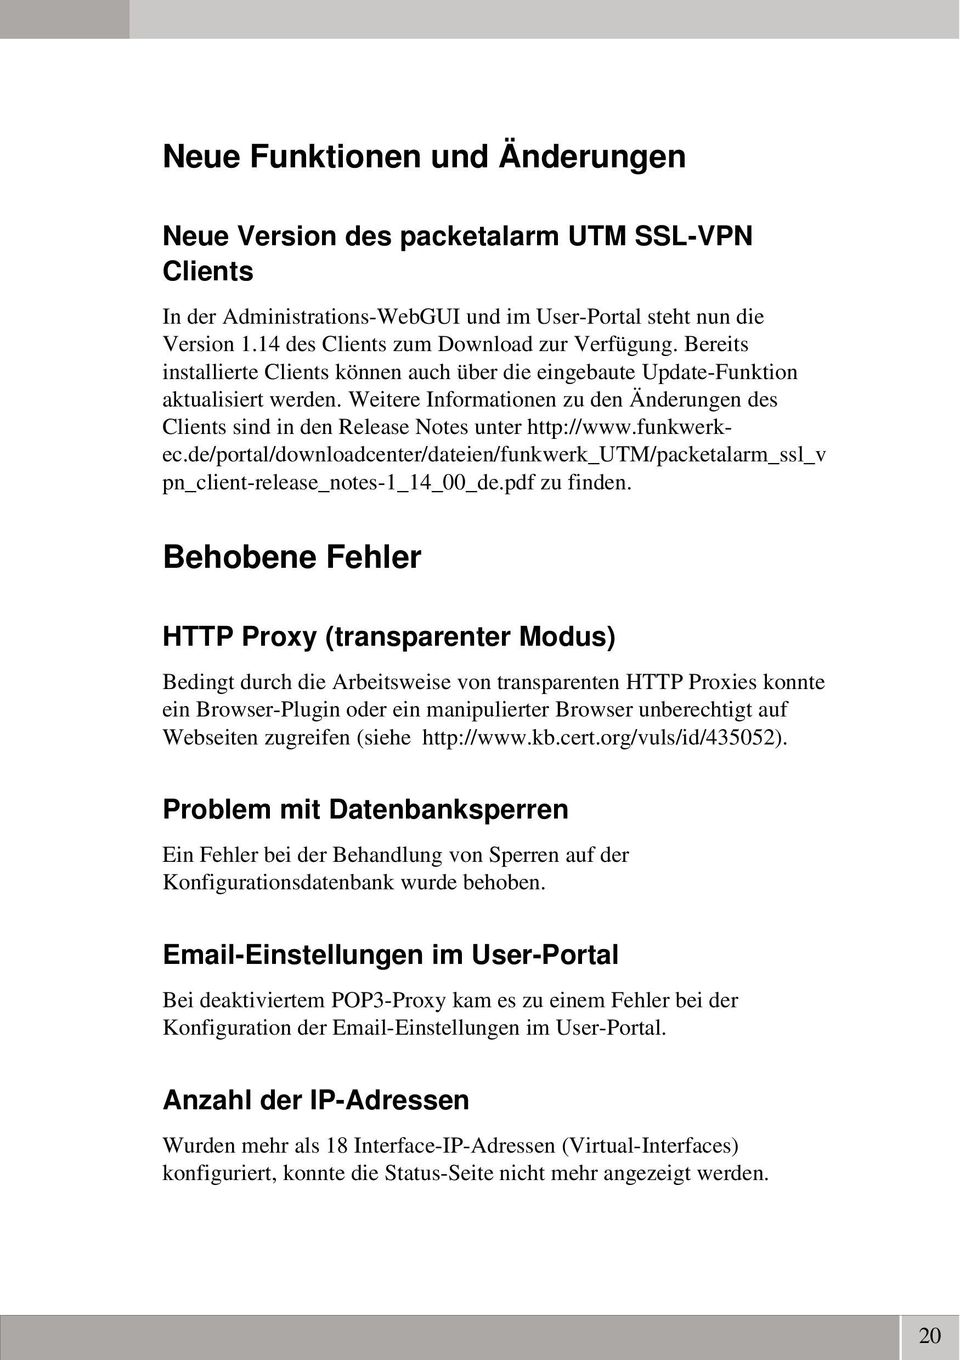 funkwerkec.de/portal/downloadcenter/dateien/funkwerk_utm/packetalarm_ssl_v pn_client release_notes 1_14_00_de.pdf zu finden.